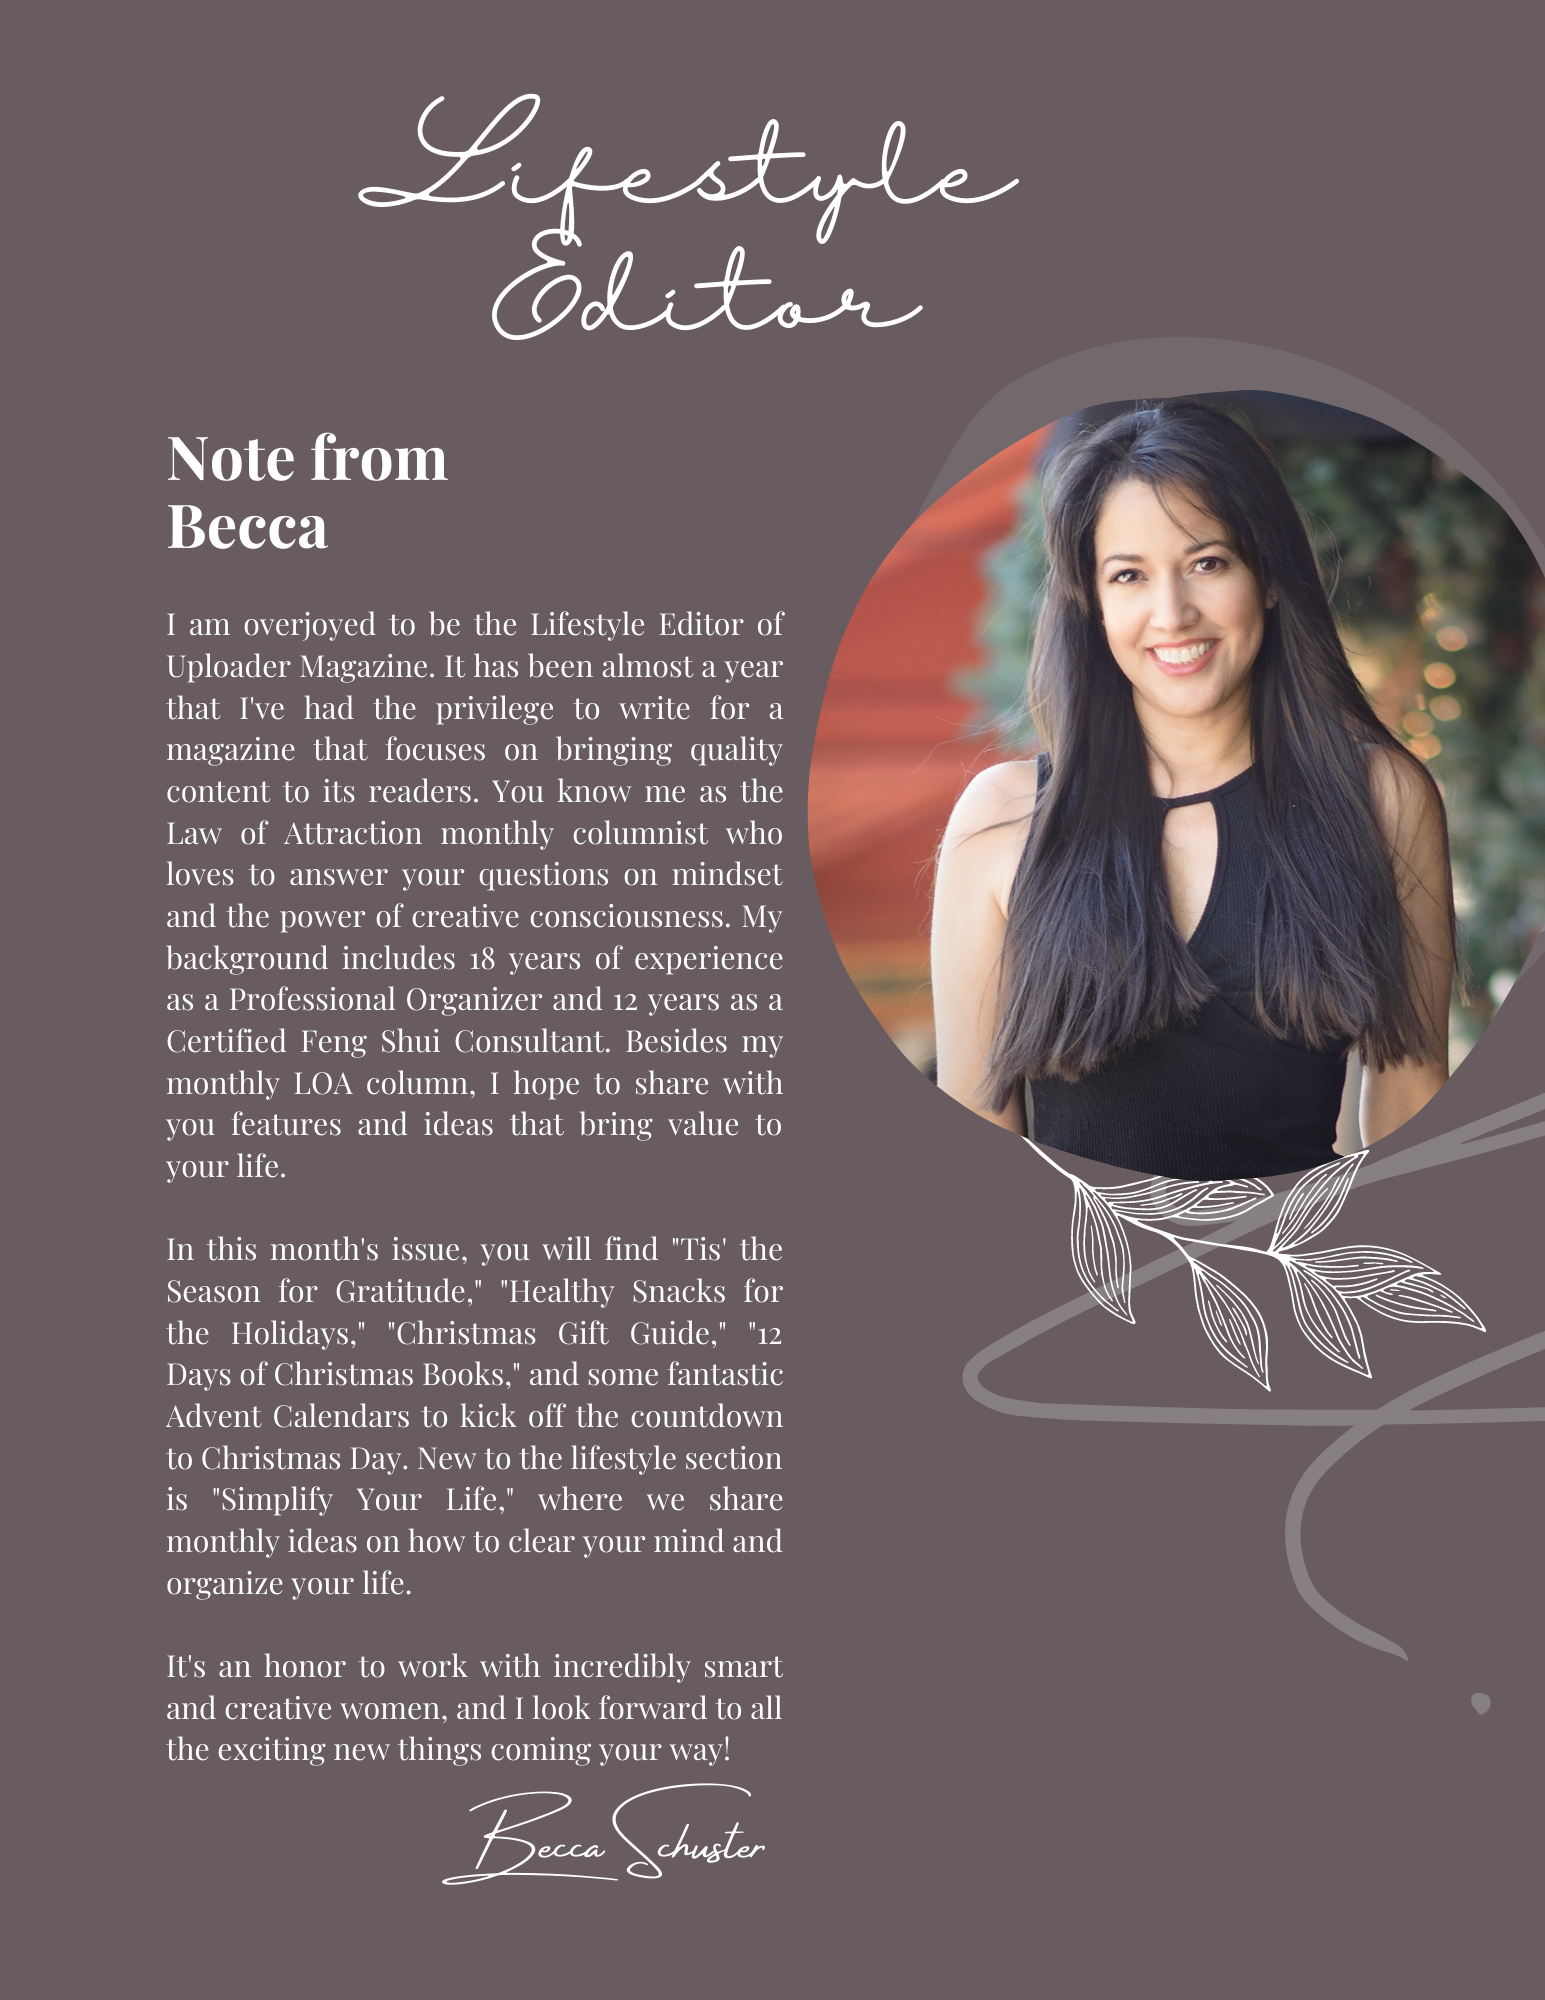 Uploader Magazine Note from Becca Schuster - Lifestyle Editor